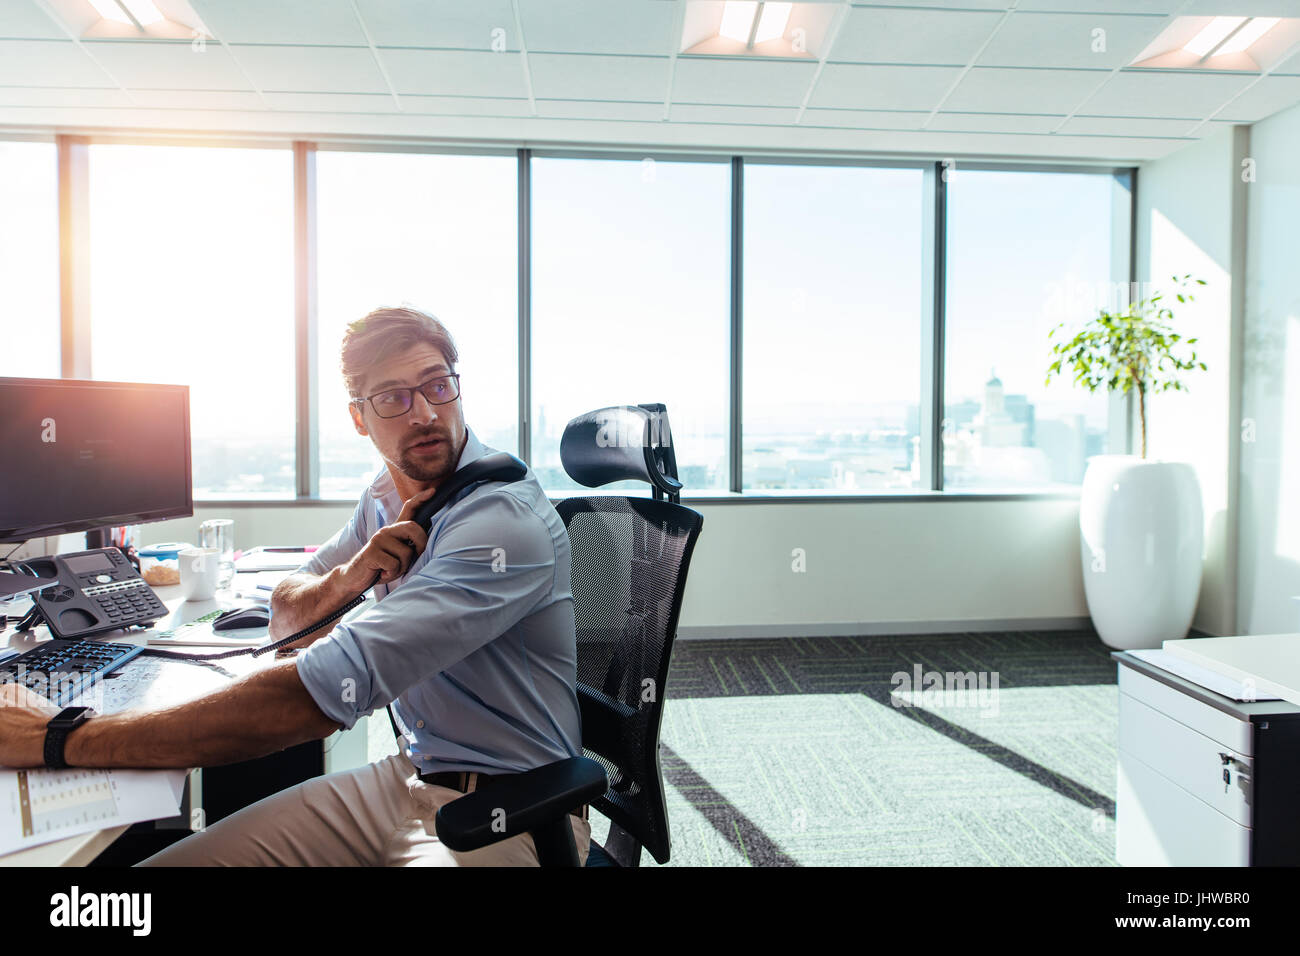 Businessman working in his office with computers and business papers on table. Young entrepreneur looking behind - Stock Image